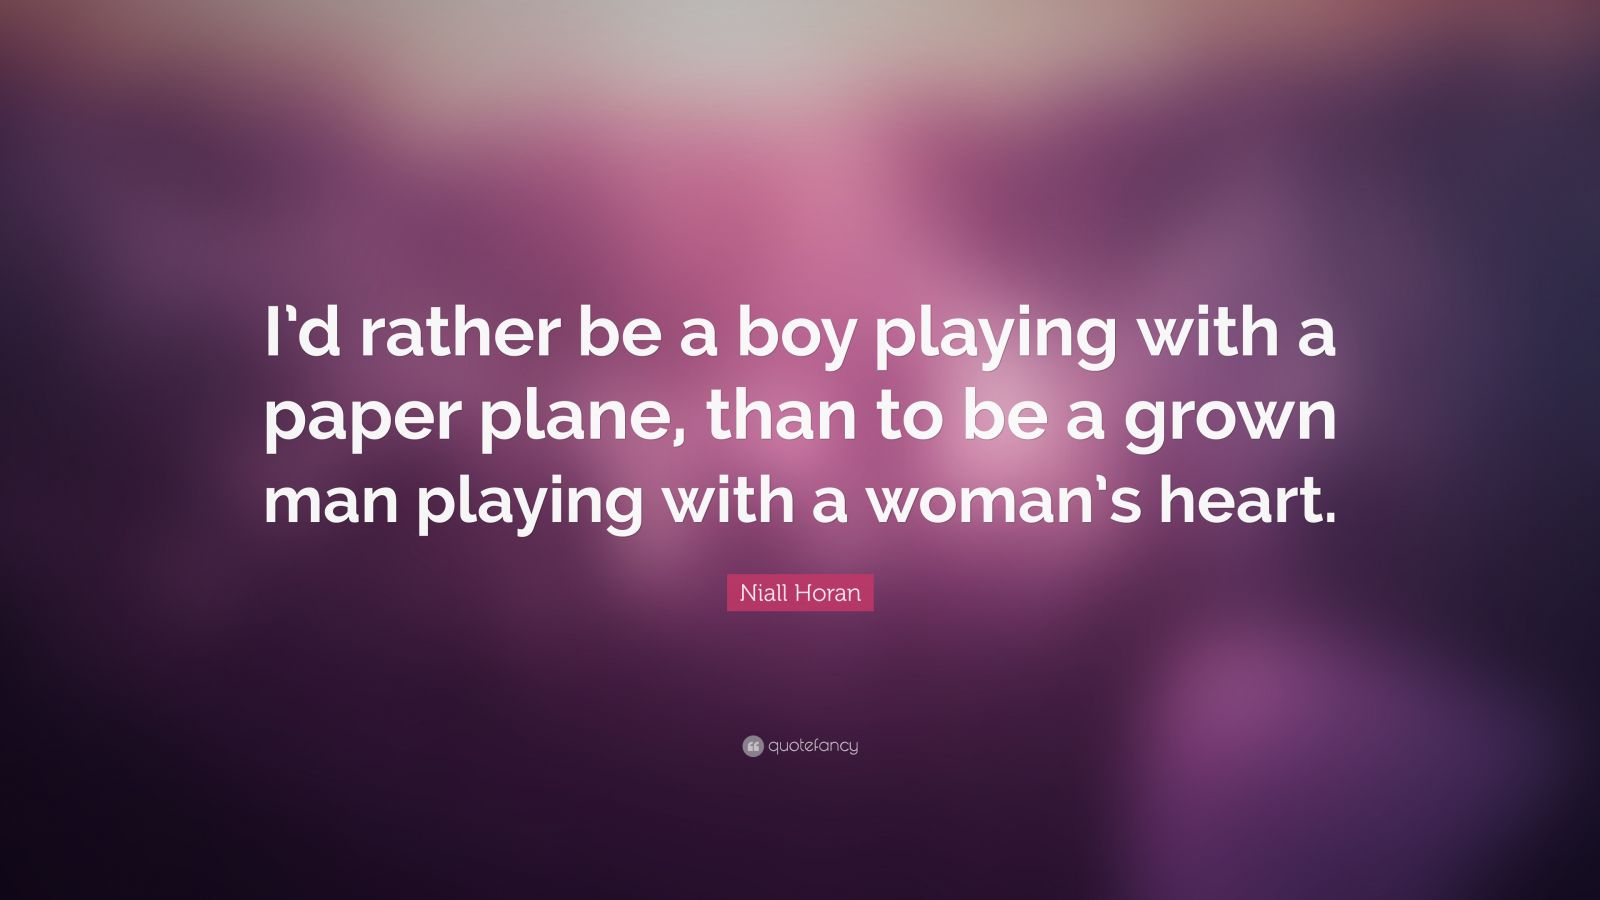 """Niall Horan Quote: """"I'd rather be a boy playing with a paper plane, than to be a grown man playing with a woman's heart."""""""